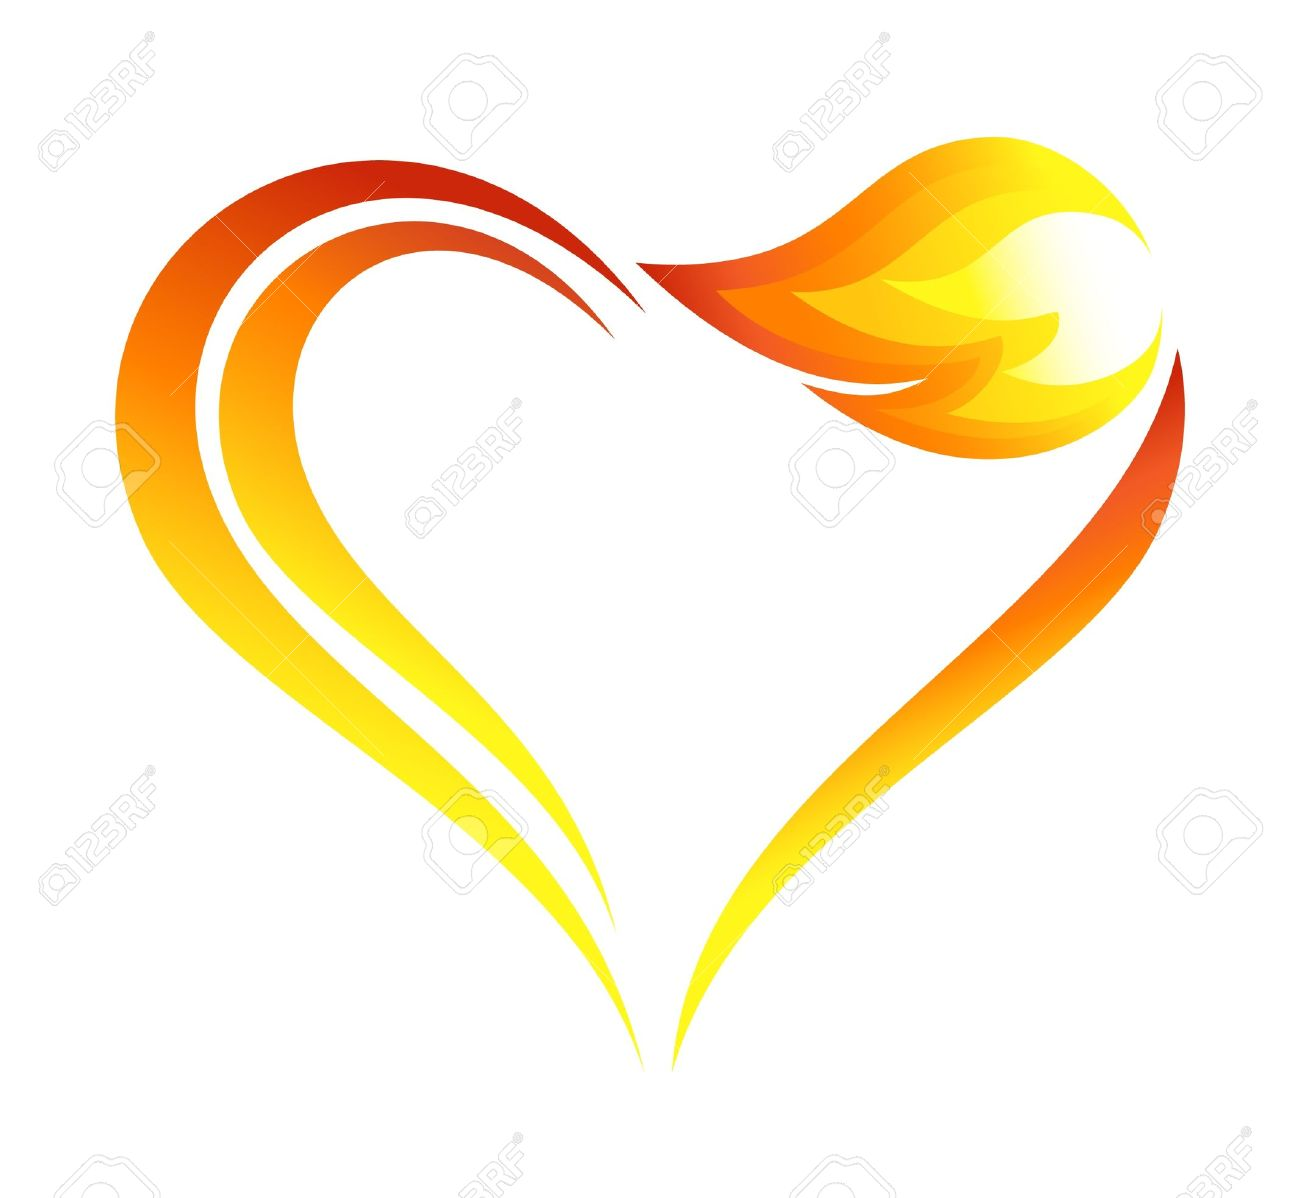 Abstract fire flames icon with heart element Stock Vector - 15251893